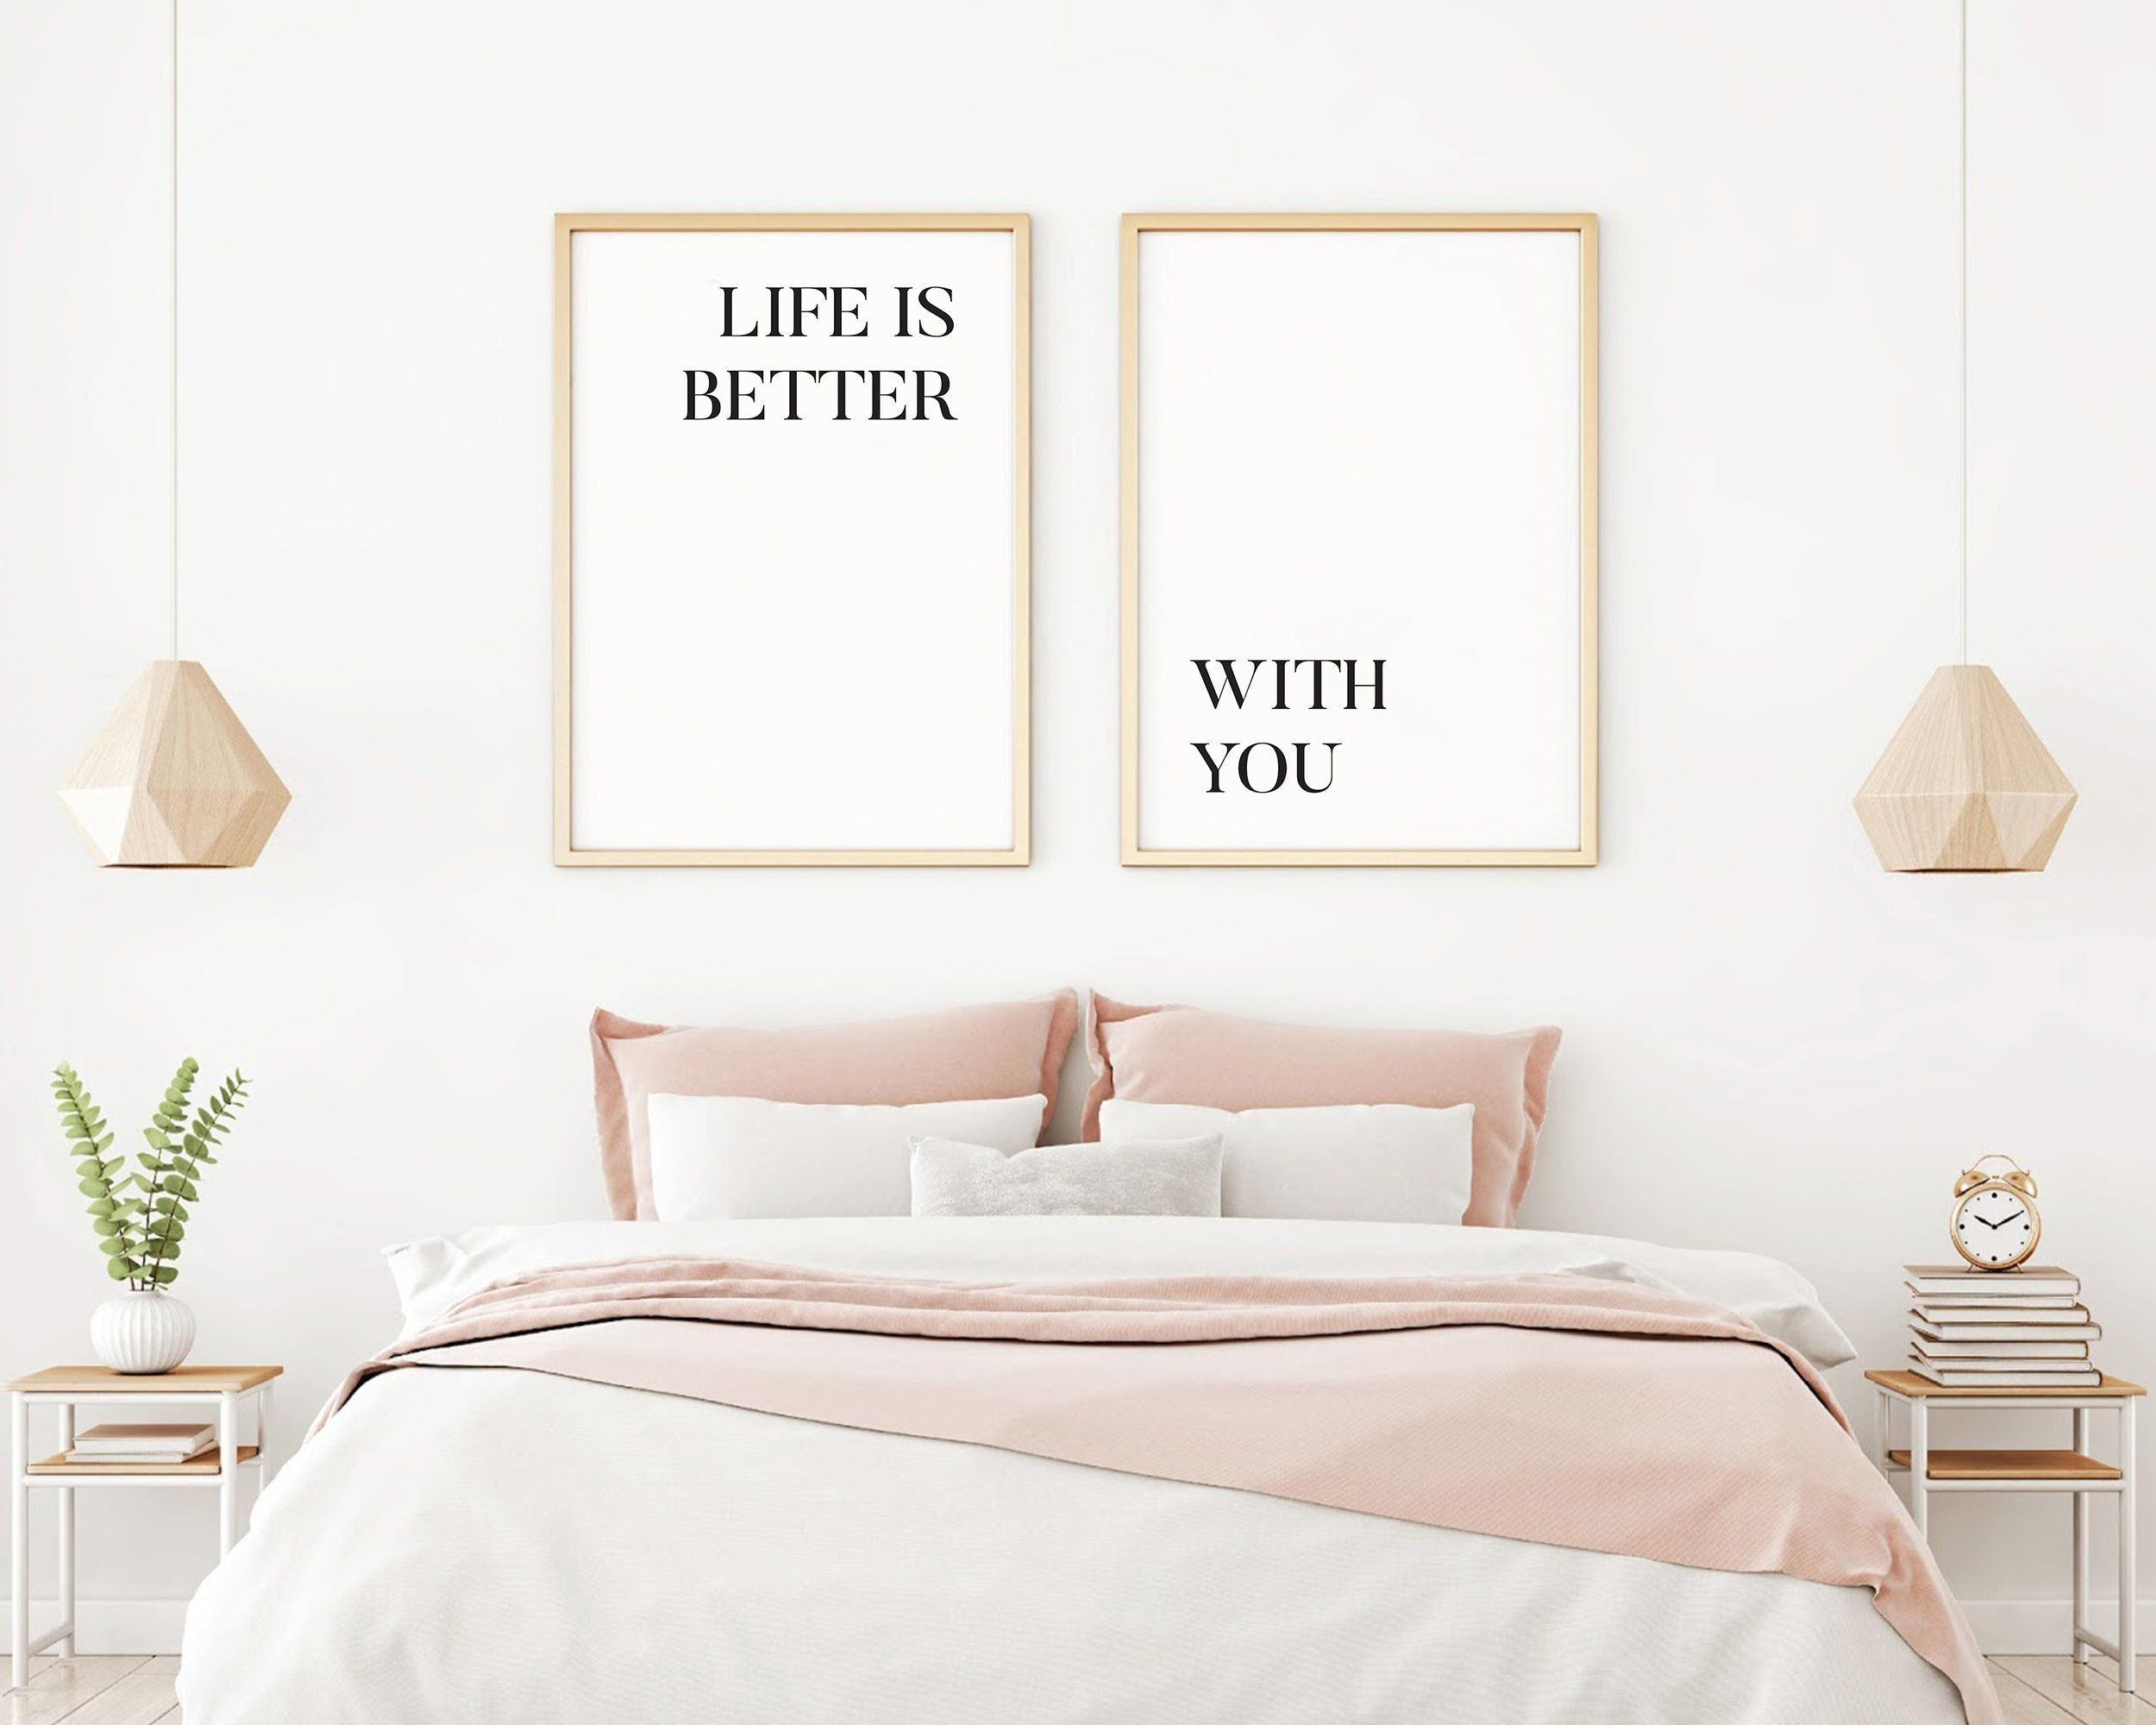 Except with hitchhikers quote above bed